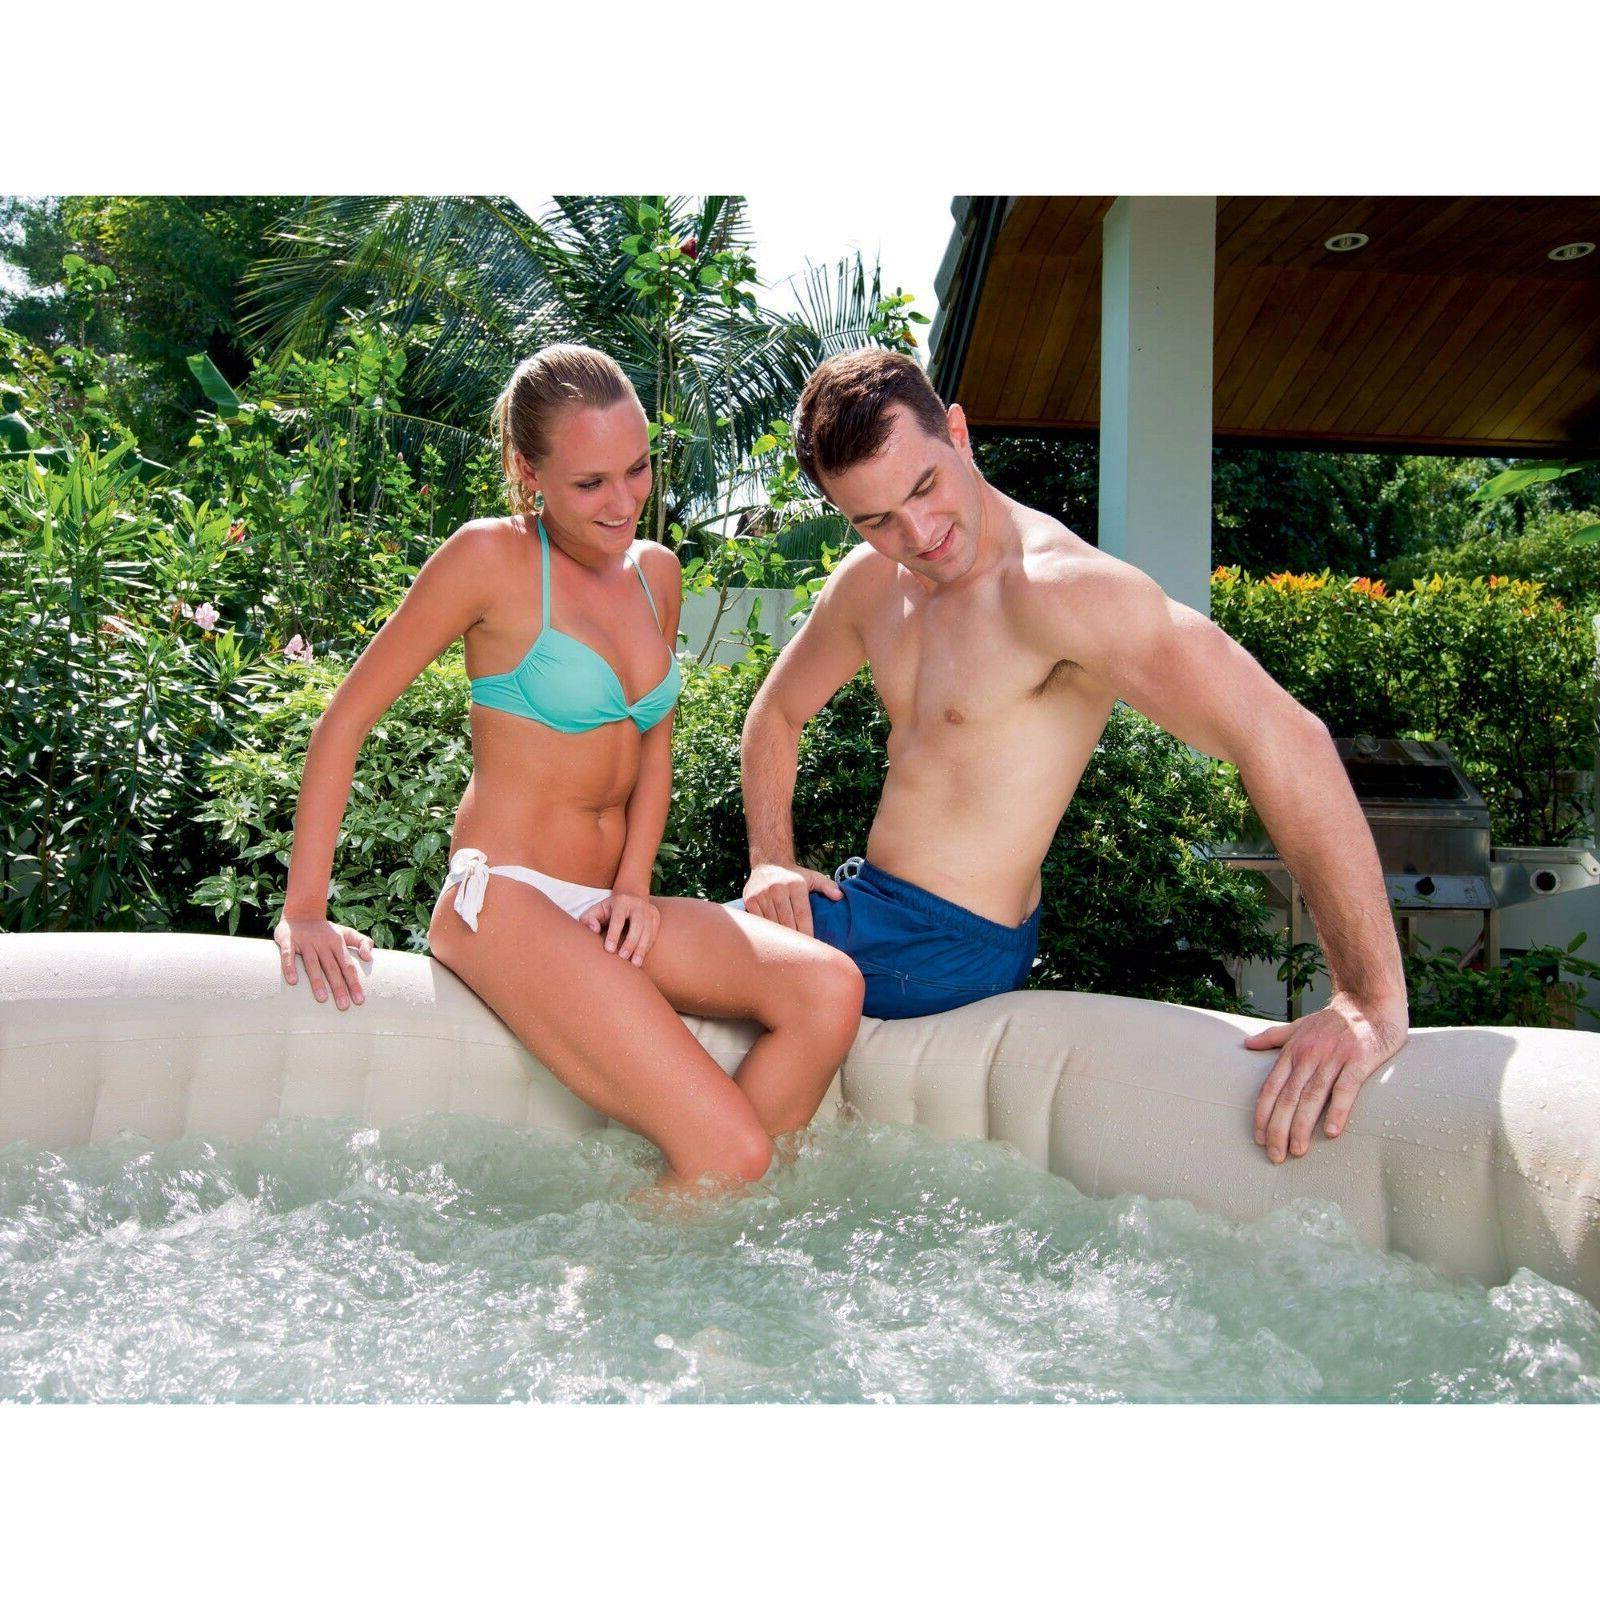 Portable Spa Tube Relax Outdoor For People